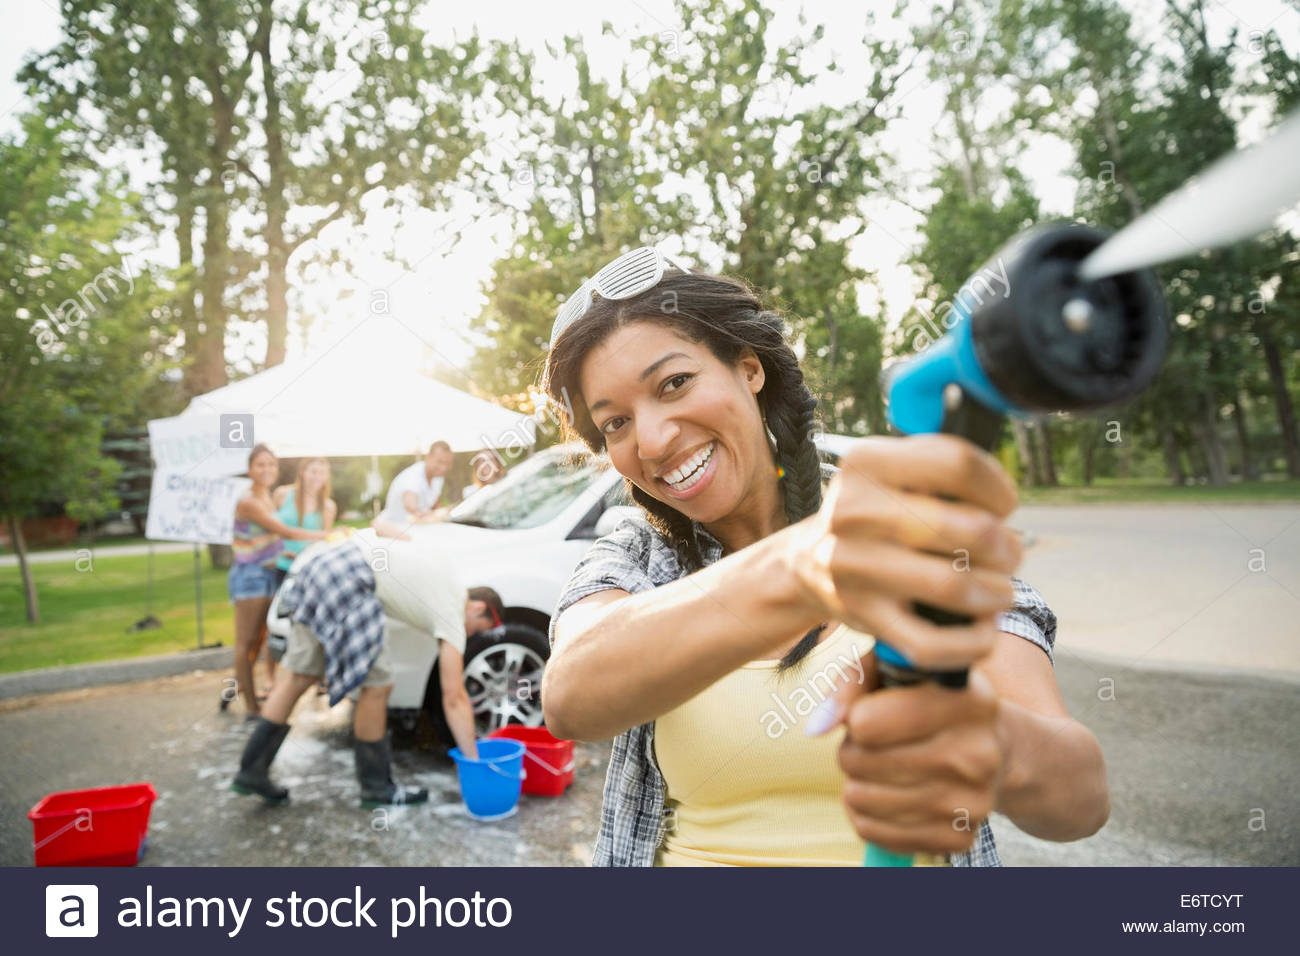 Portrait of woman using hose at car wash - Stock Image